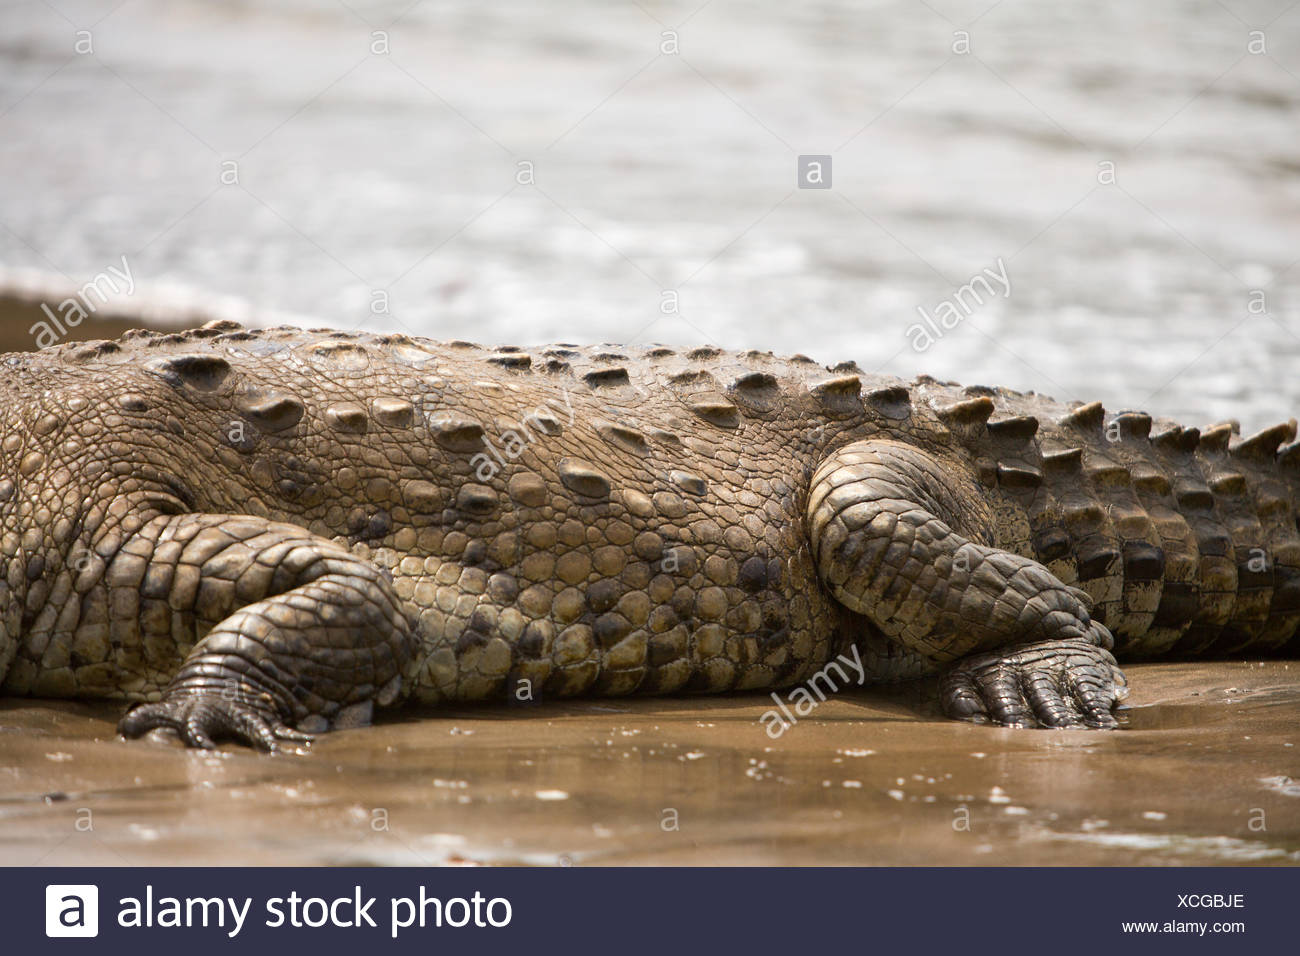 In Isla Coiba National Park,the details of an american crocodile's tough,scaly skin is visible resting in the water. Stock Photo